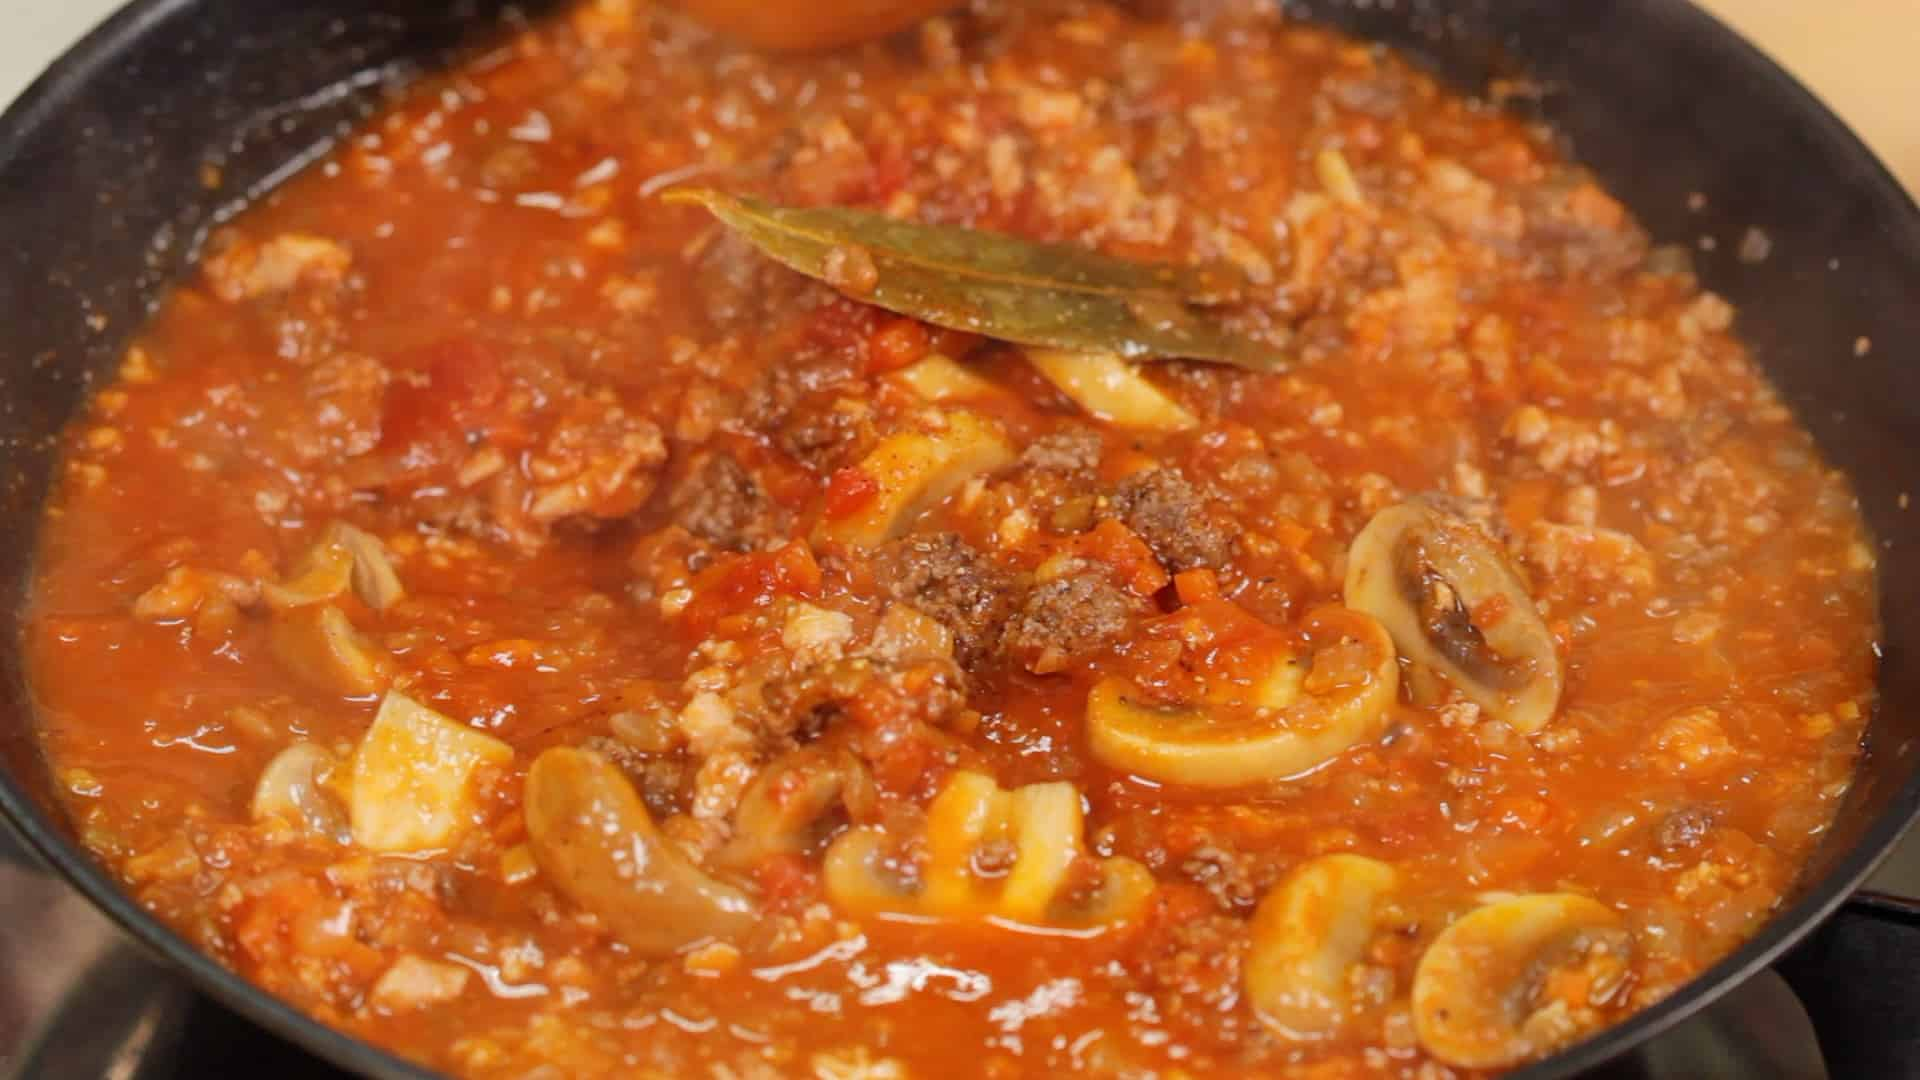 Tomato Meat Sauce Recipe (Low-Carb Meat Sauce with Tofu and Vegetables)